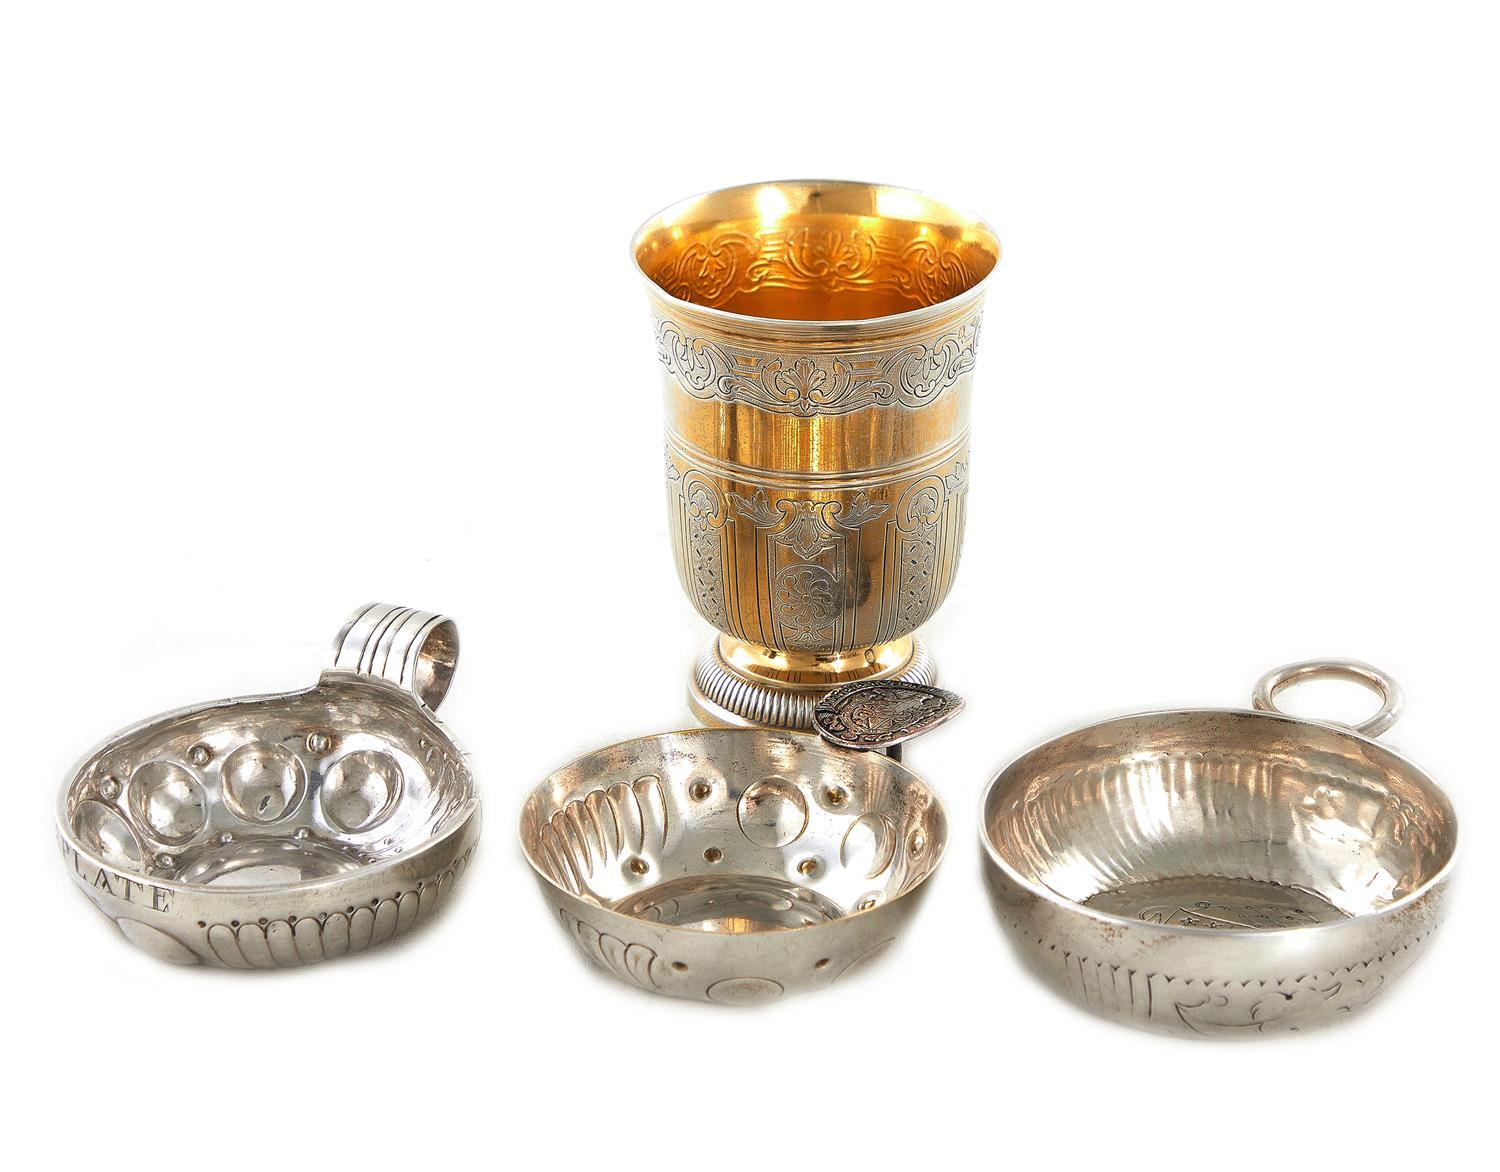 French silver beaker and wine tasters (4pcs)